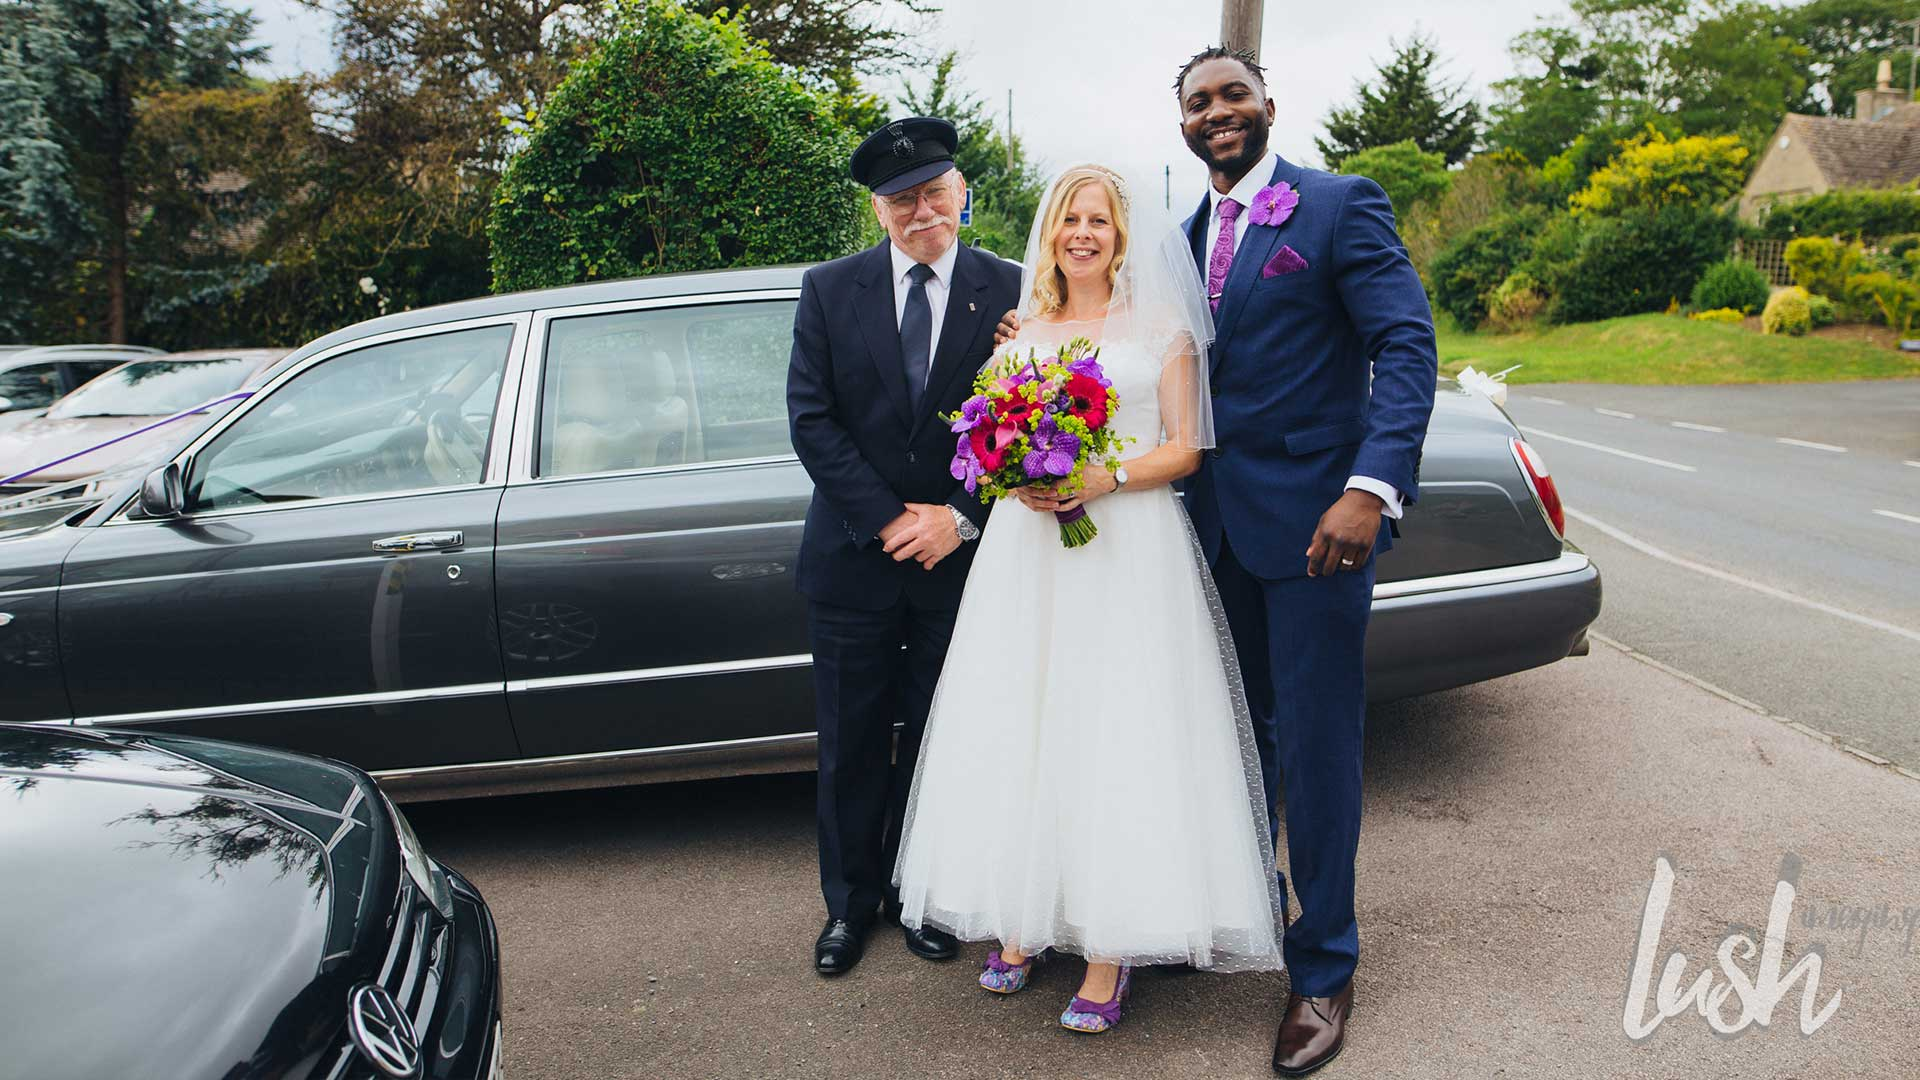 Newly-weds with Azure's Chauffeur in front of the Bentley Arnage